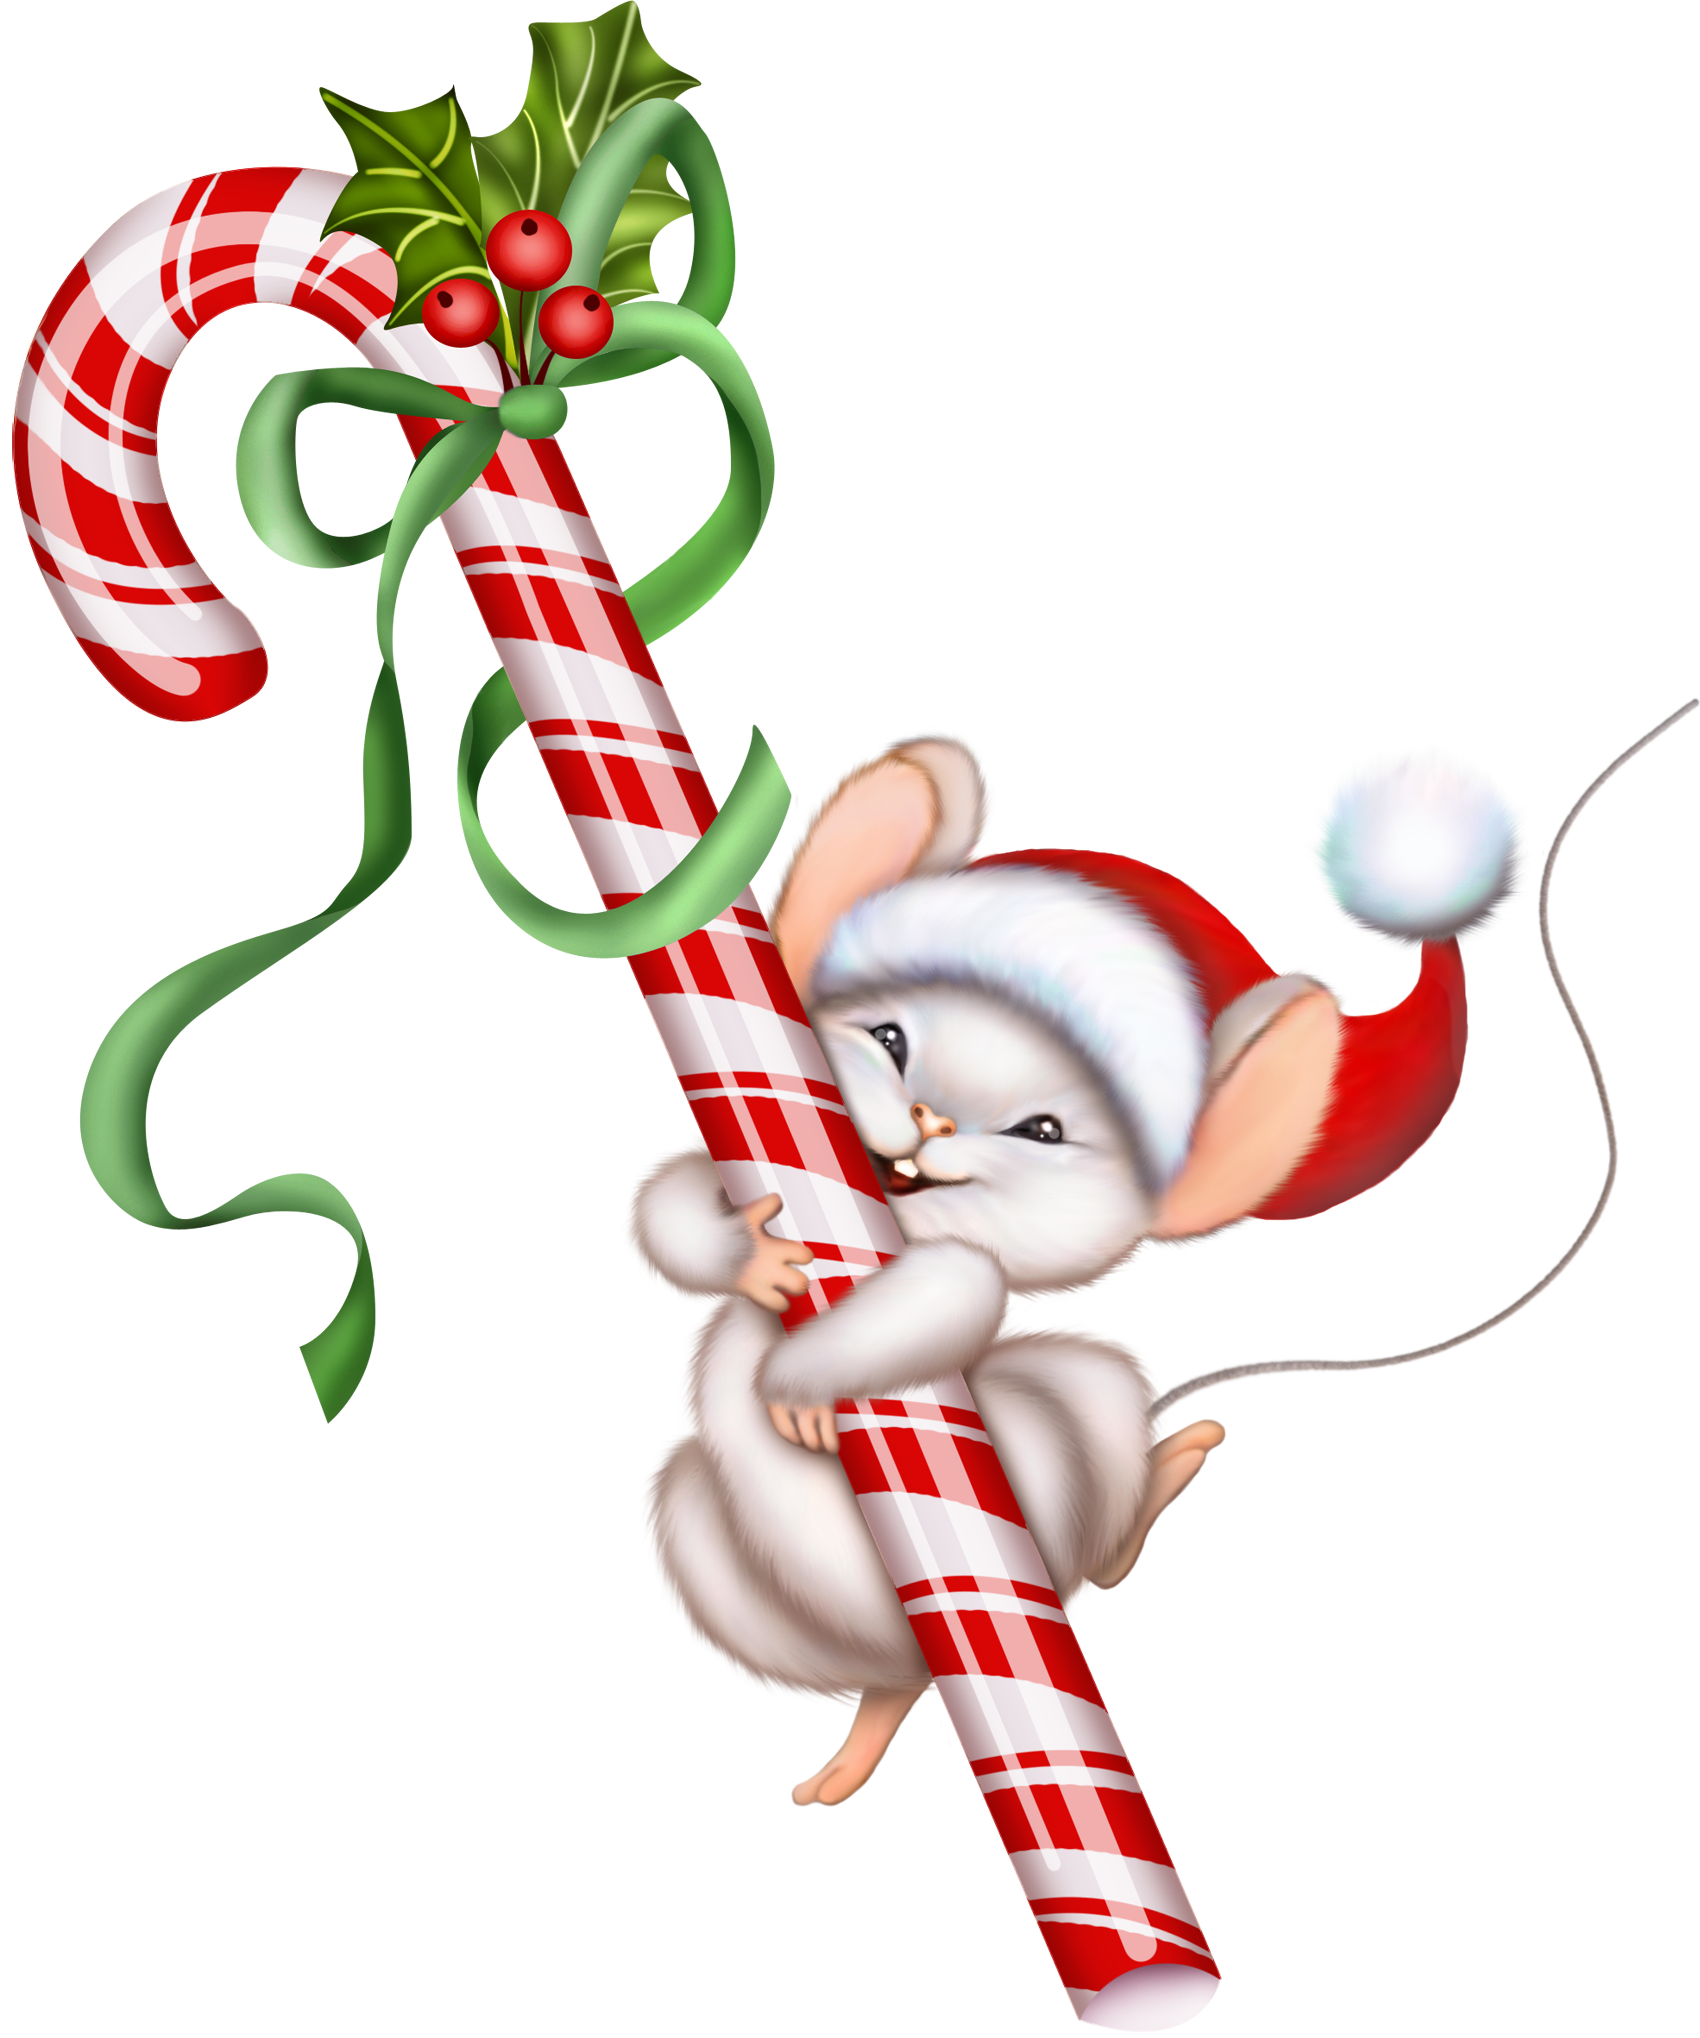 pin by crafty annabelle on christmas clip art 2 pinterest rh pinterest com Free Christmas Music Christmas Backgrounds